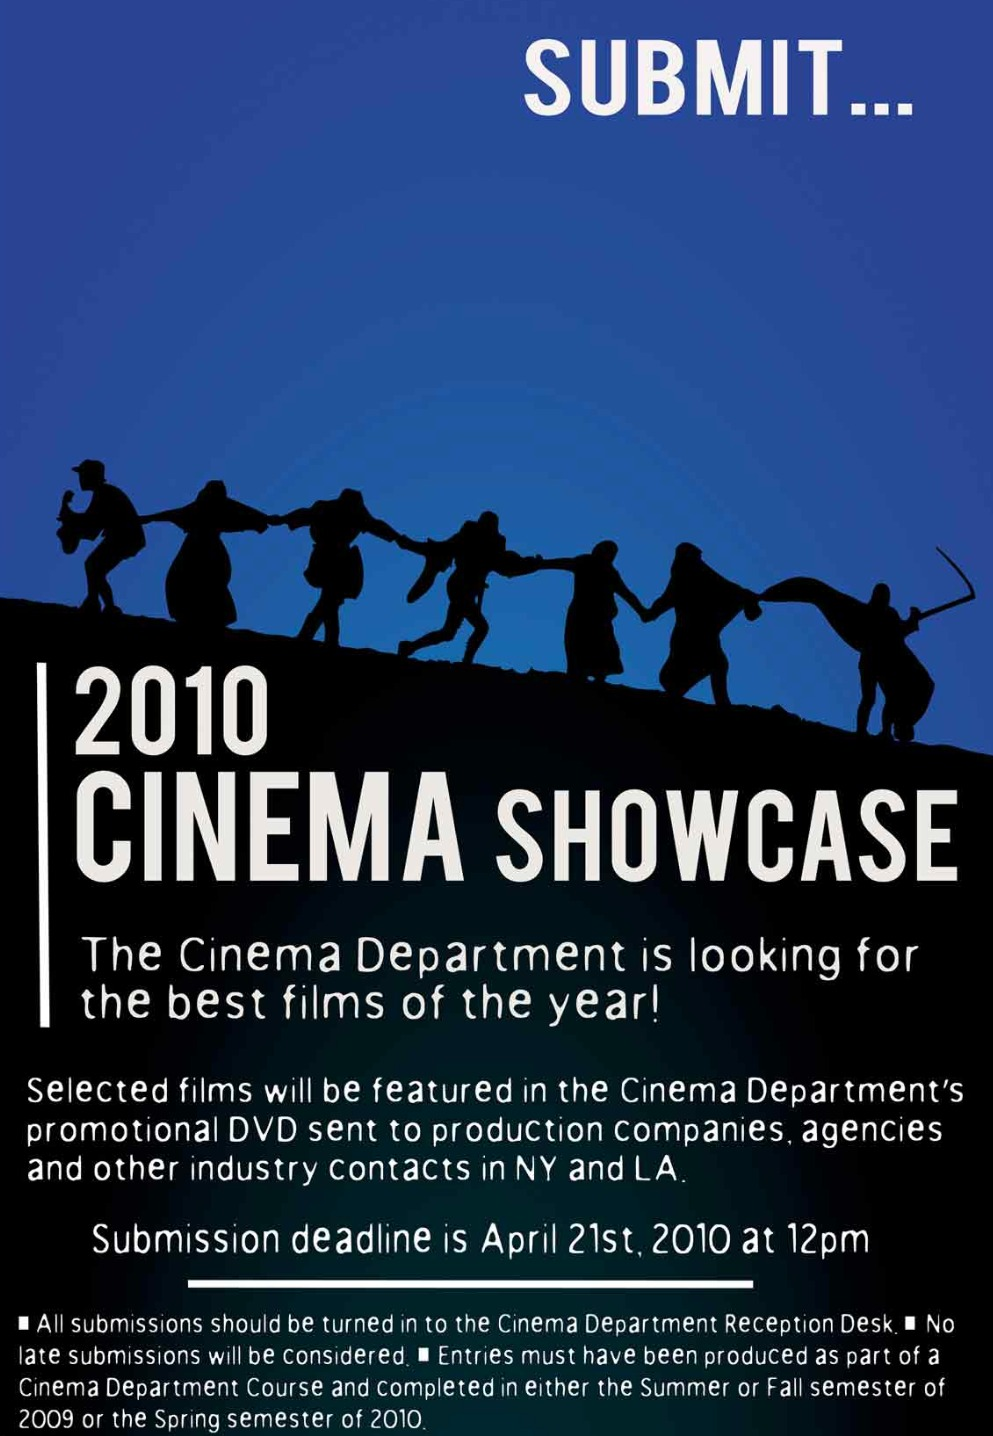 Cinema Showcase Promo Poster